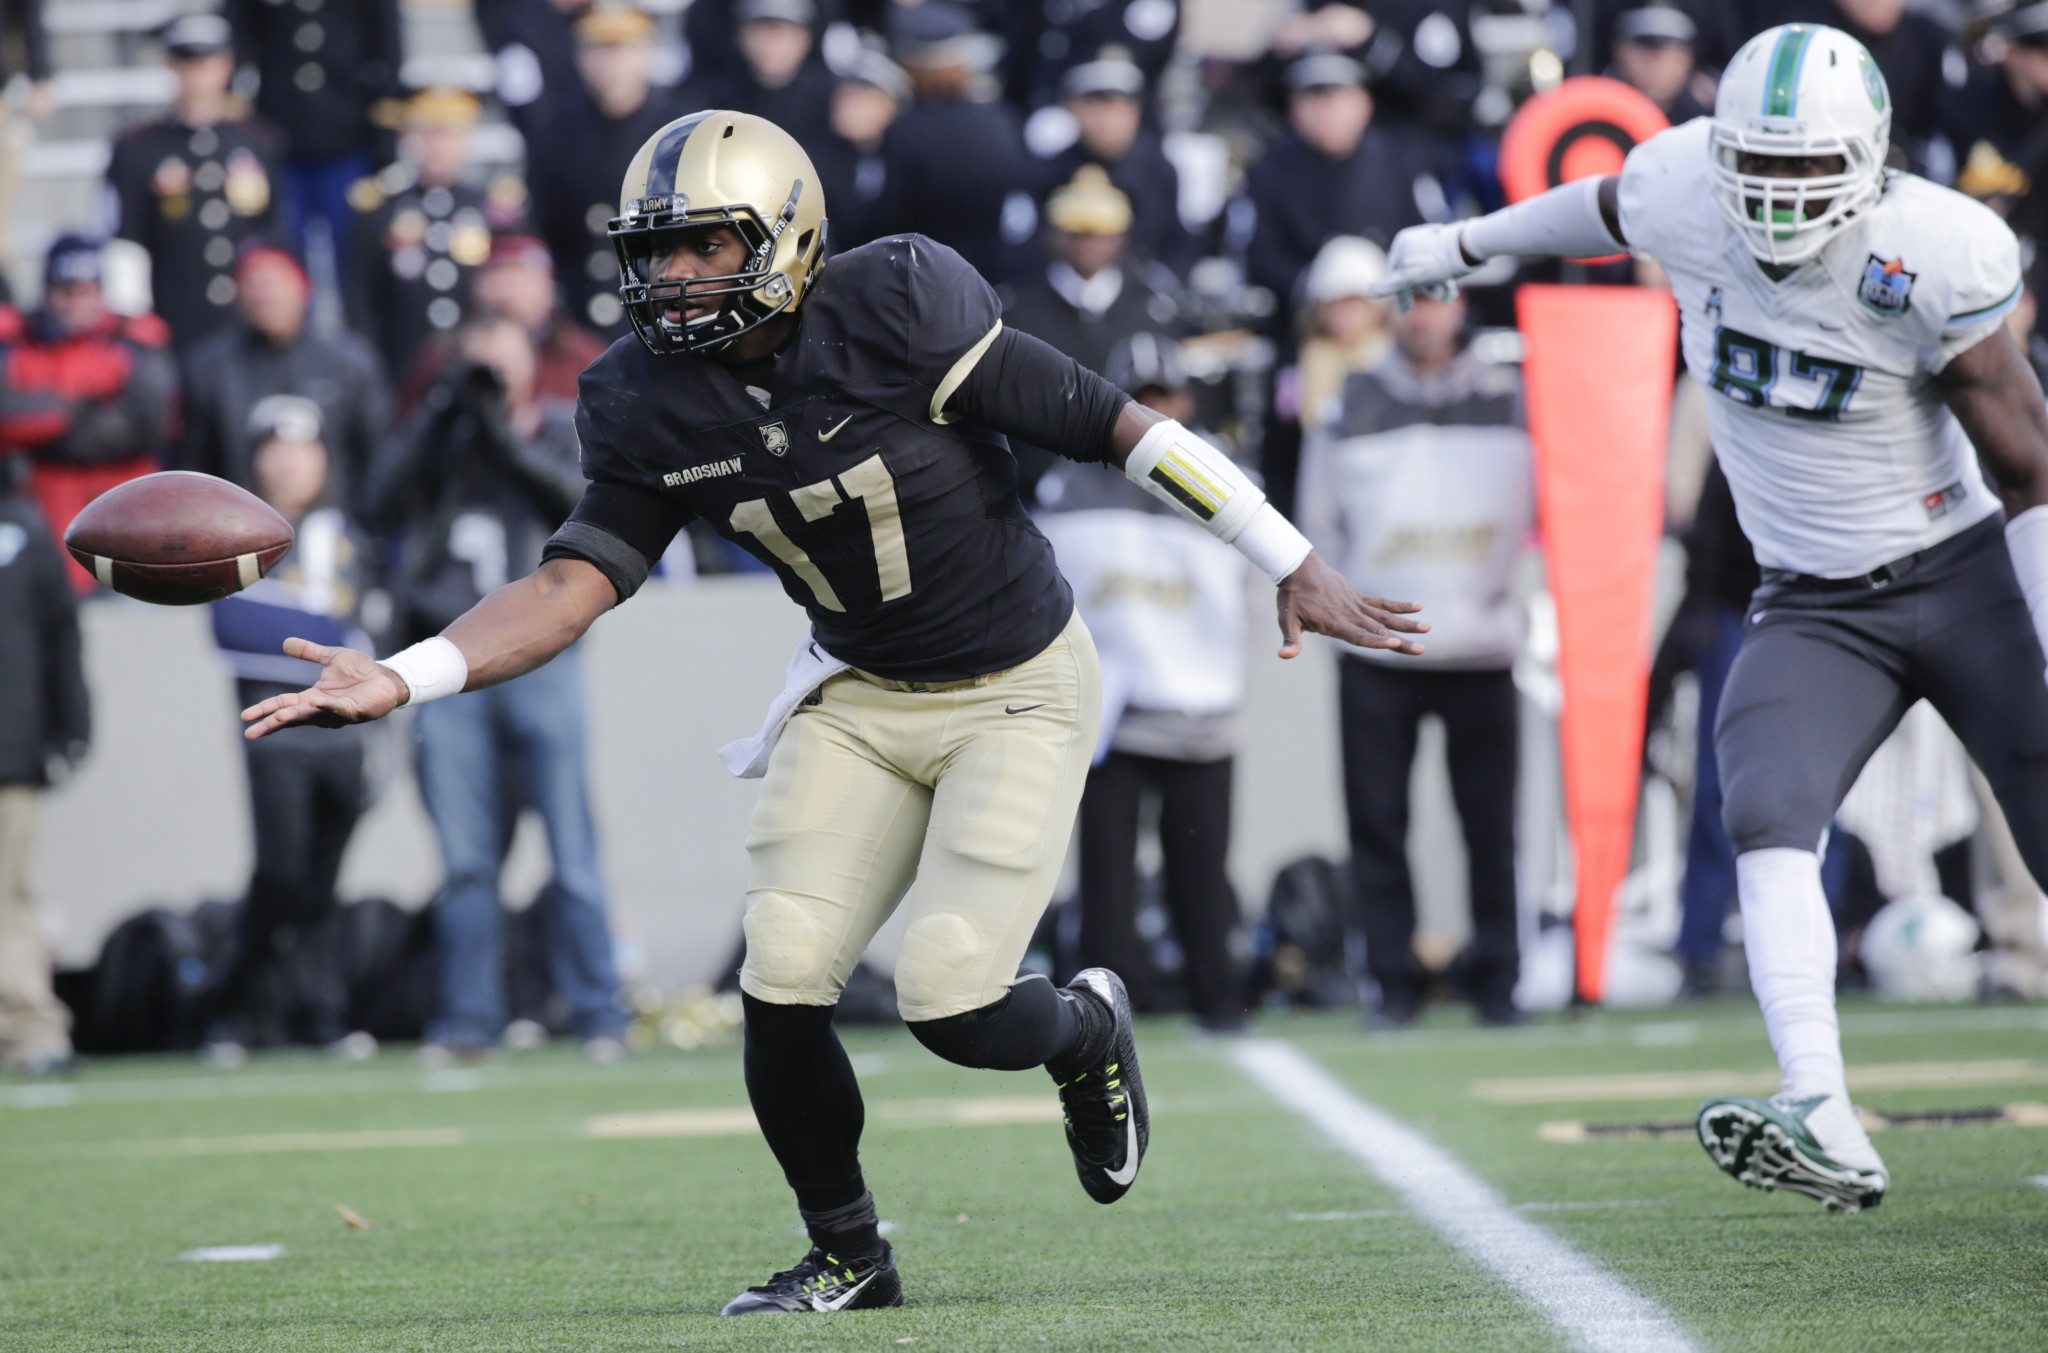 Army quarterback Ahmad Bradshaw (17) pitches the ball to a teammate during the second half of an NCAA college football game against Tulane on Saturday, Nov. 14, 2015, in West Point, N.Y. (AP Photo/Mike Groll)